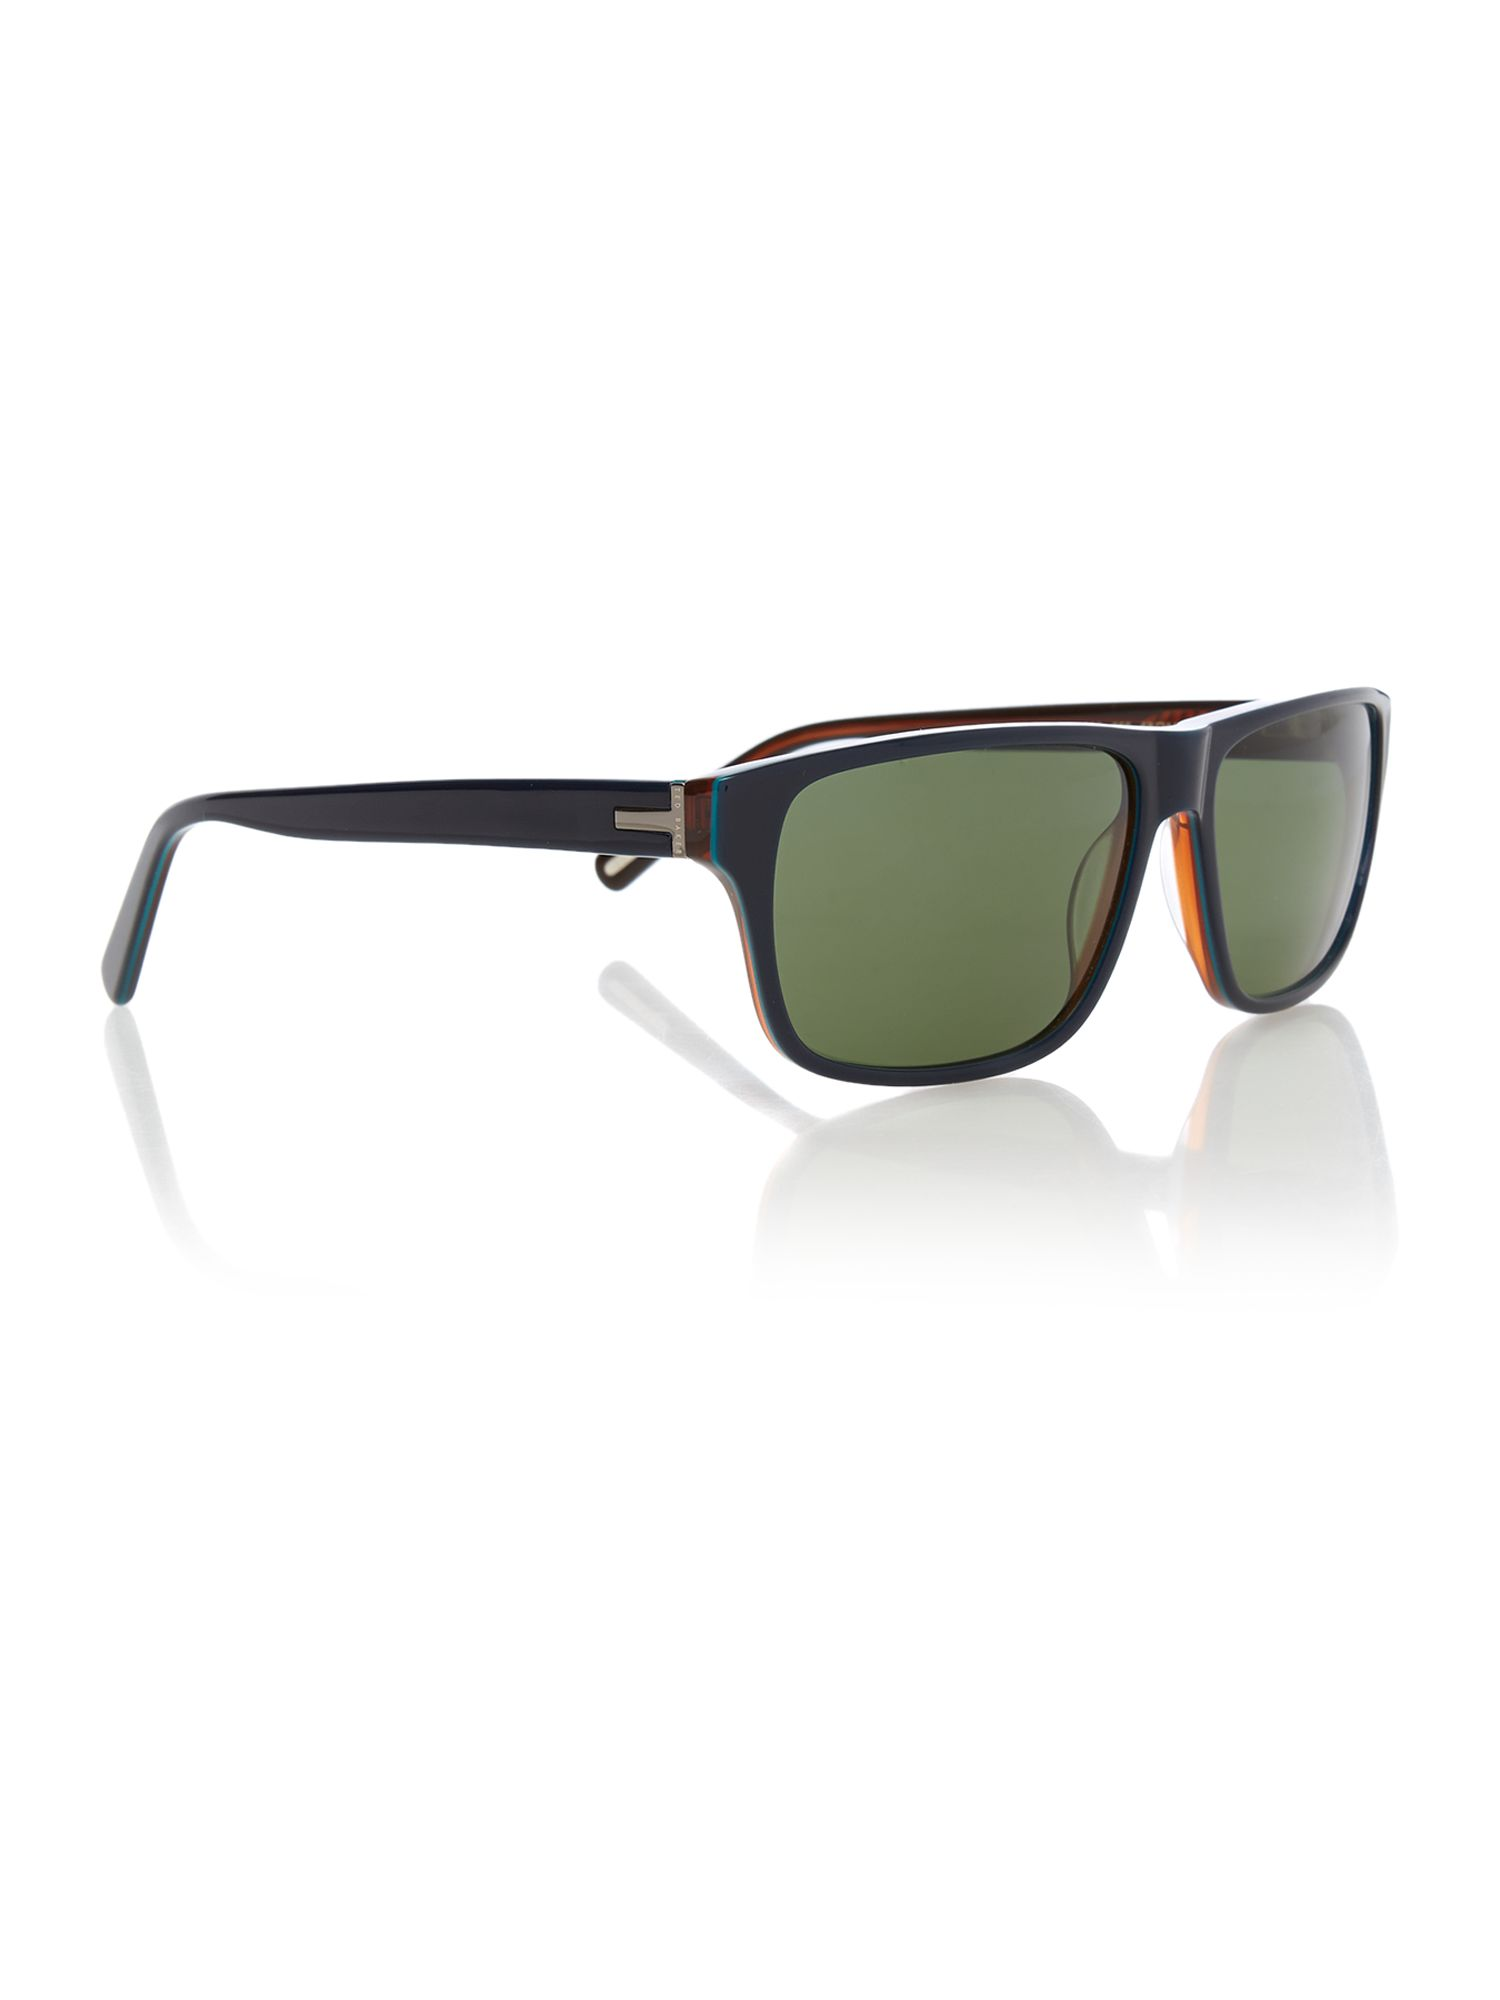 Tb1309 men`s rectangle sunglasses